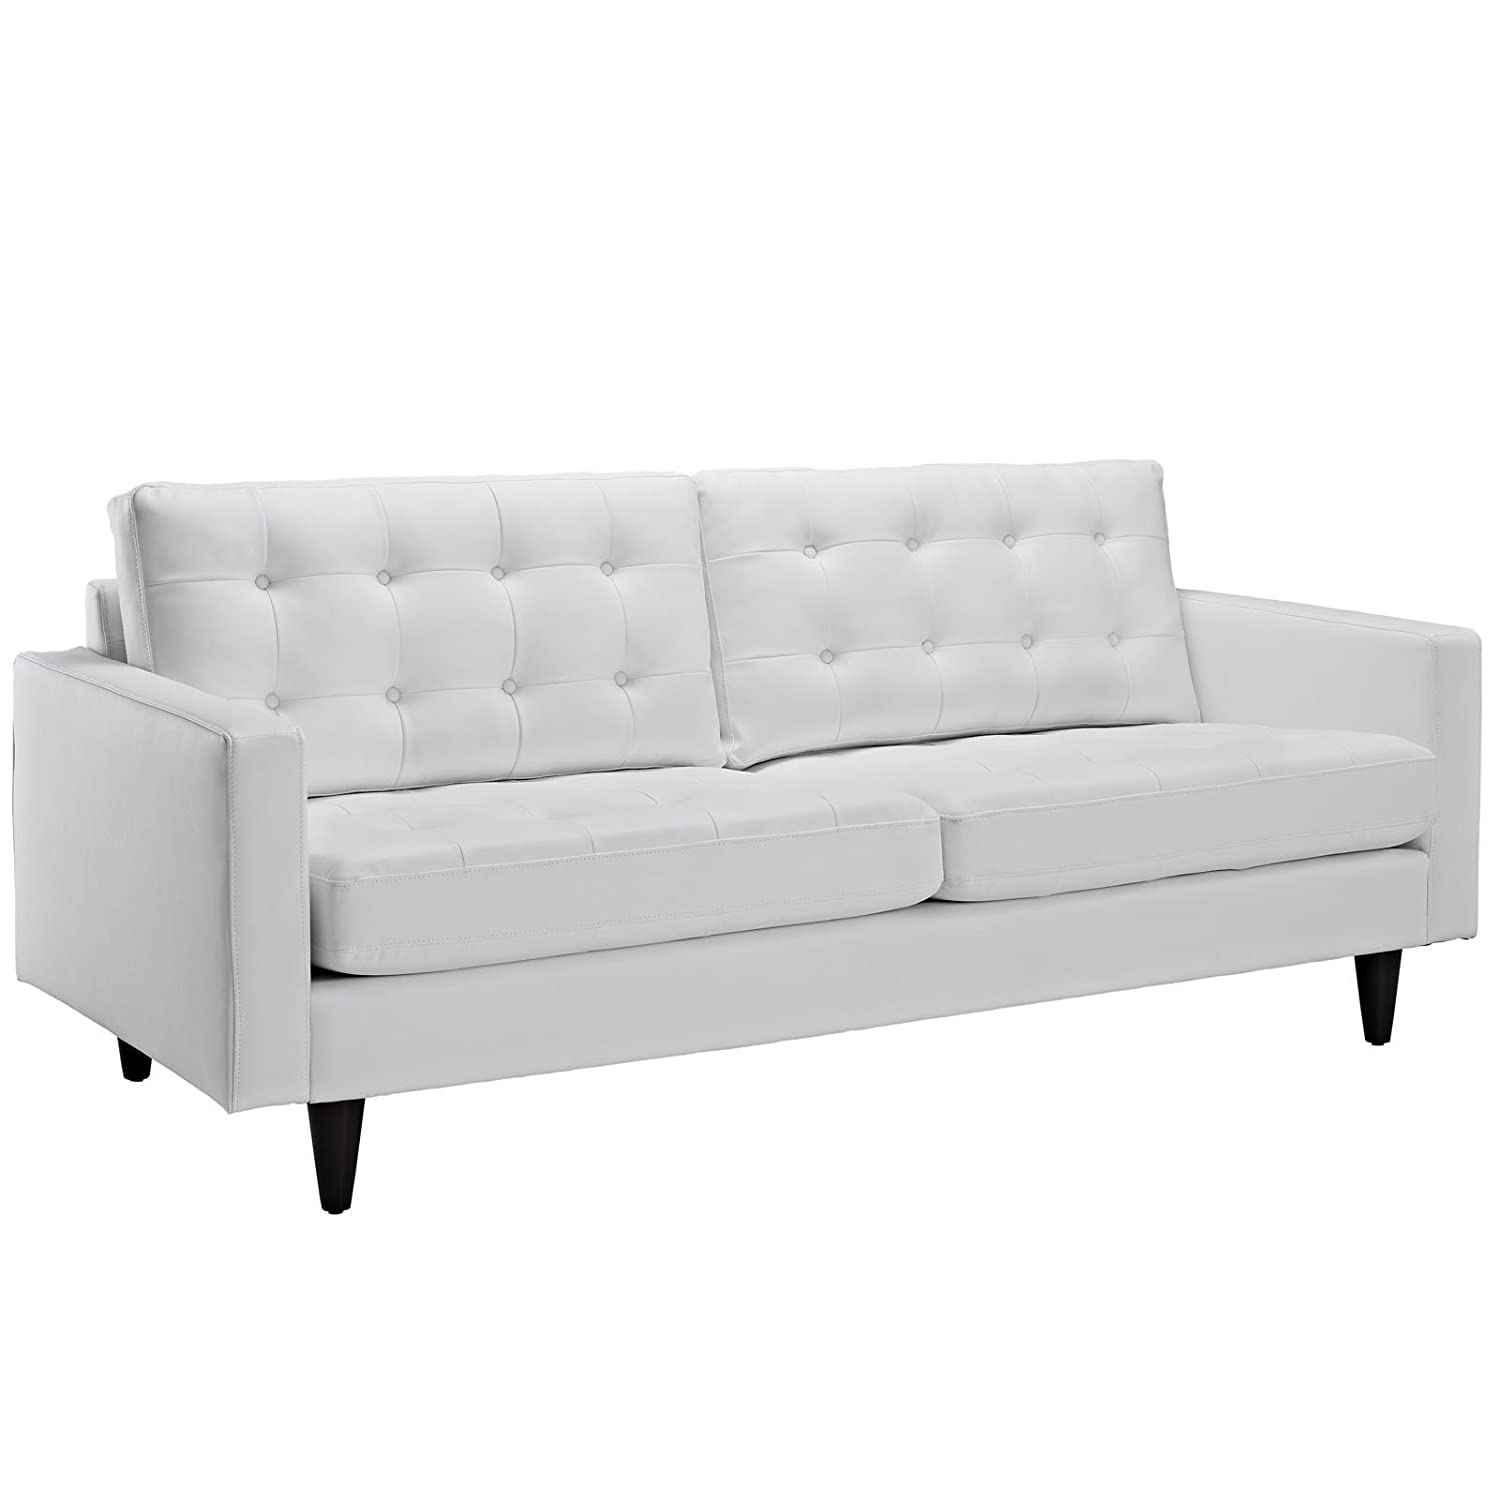 Modway EEI-1312-WHI Empress Mid-Century Modern Upholstered Leather Sofa and Two Armchair Set White